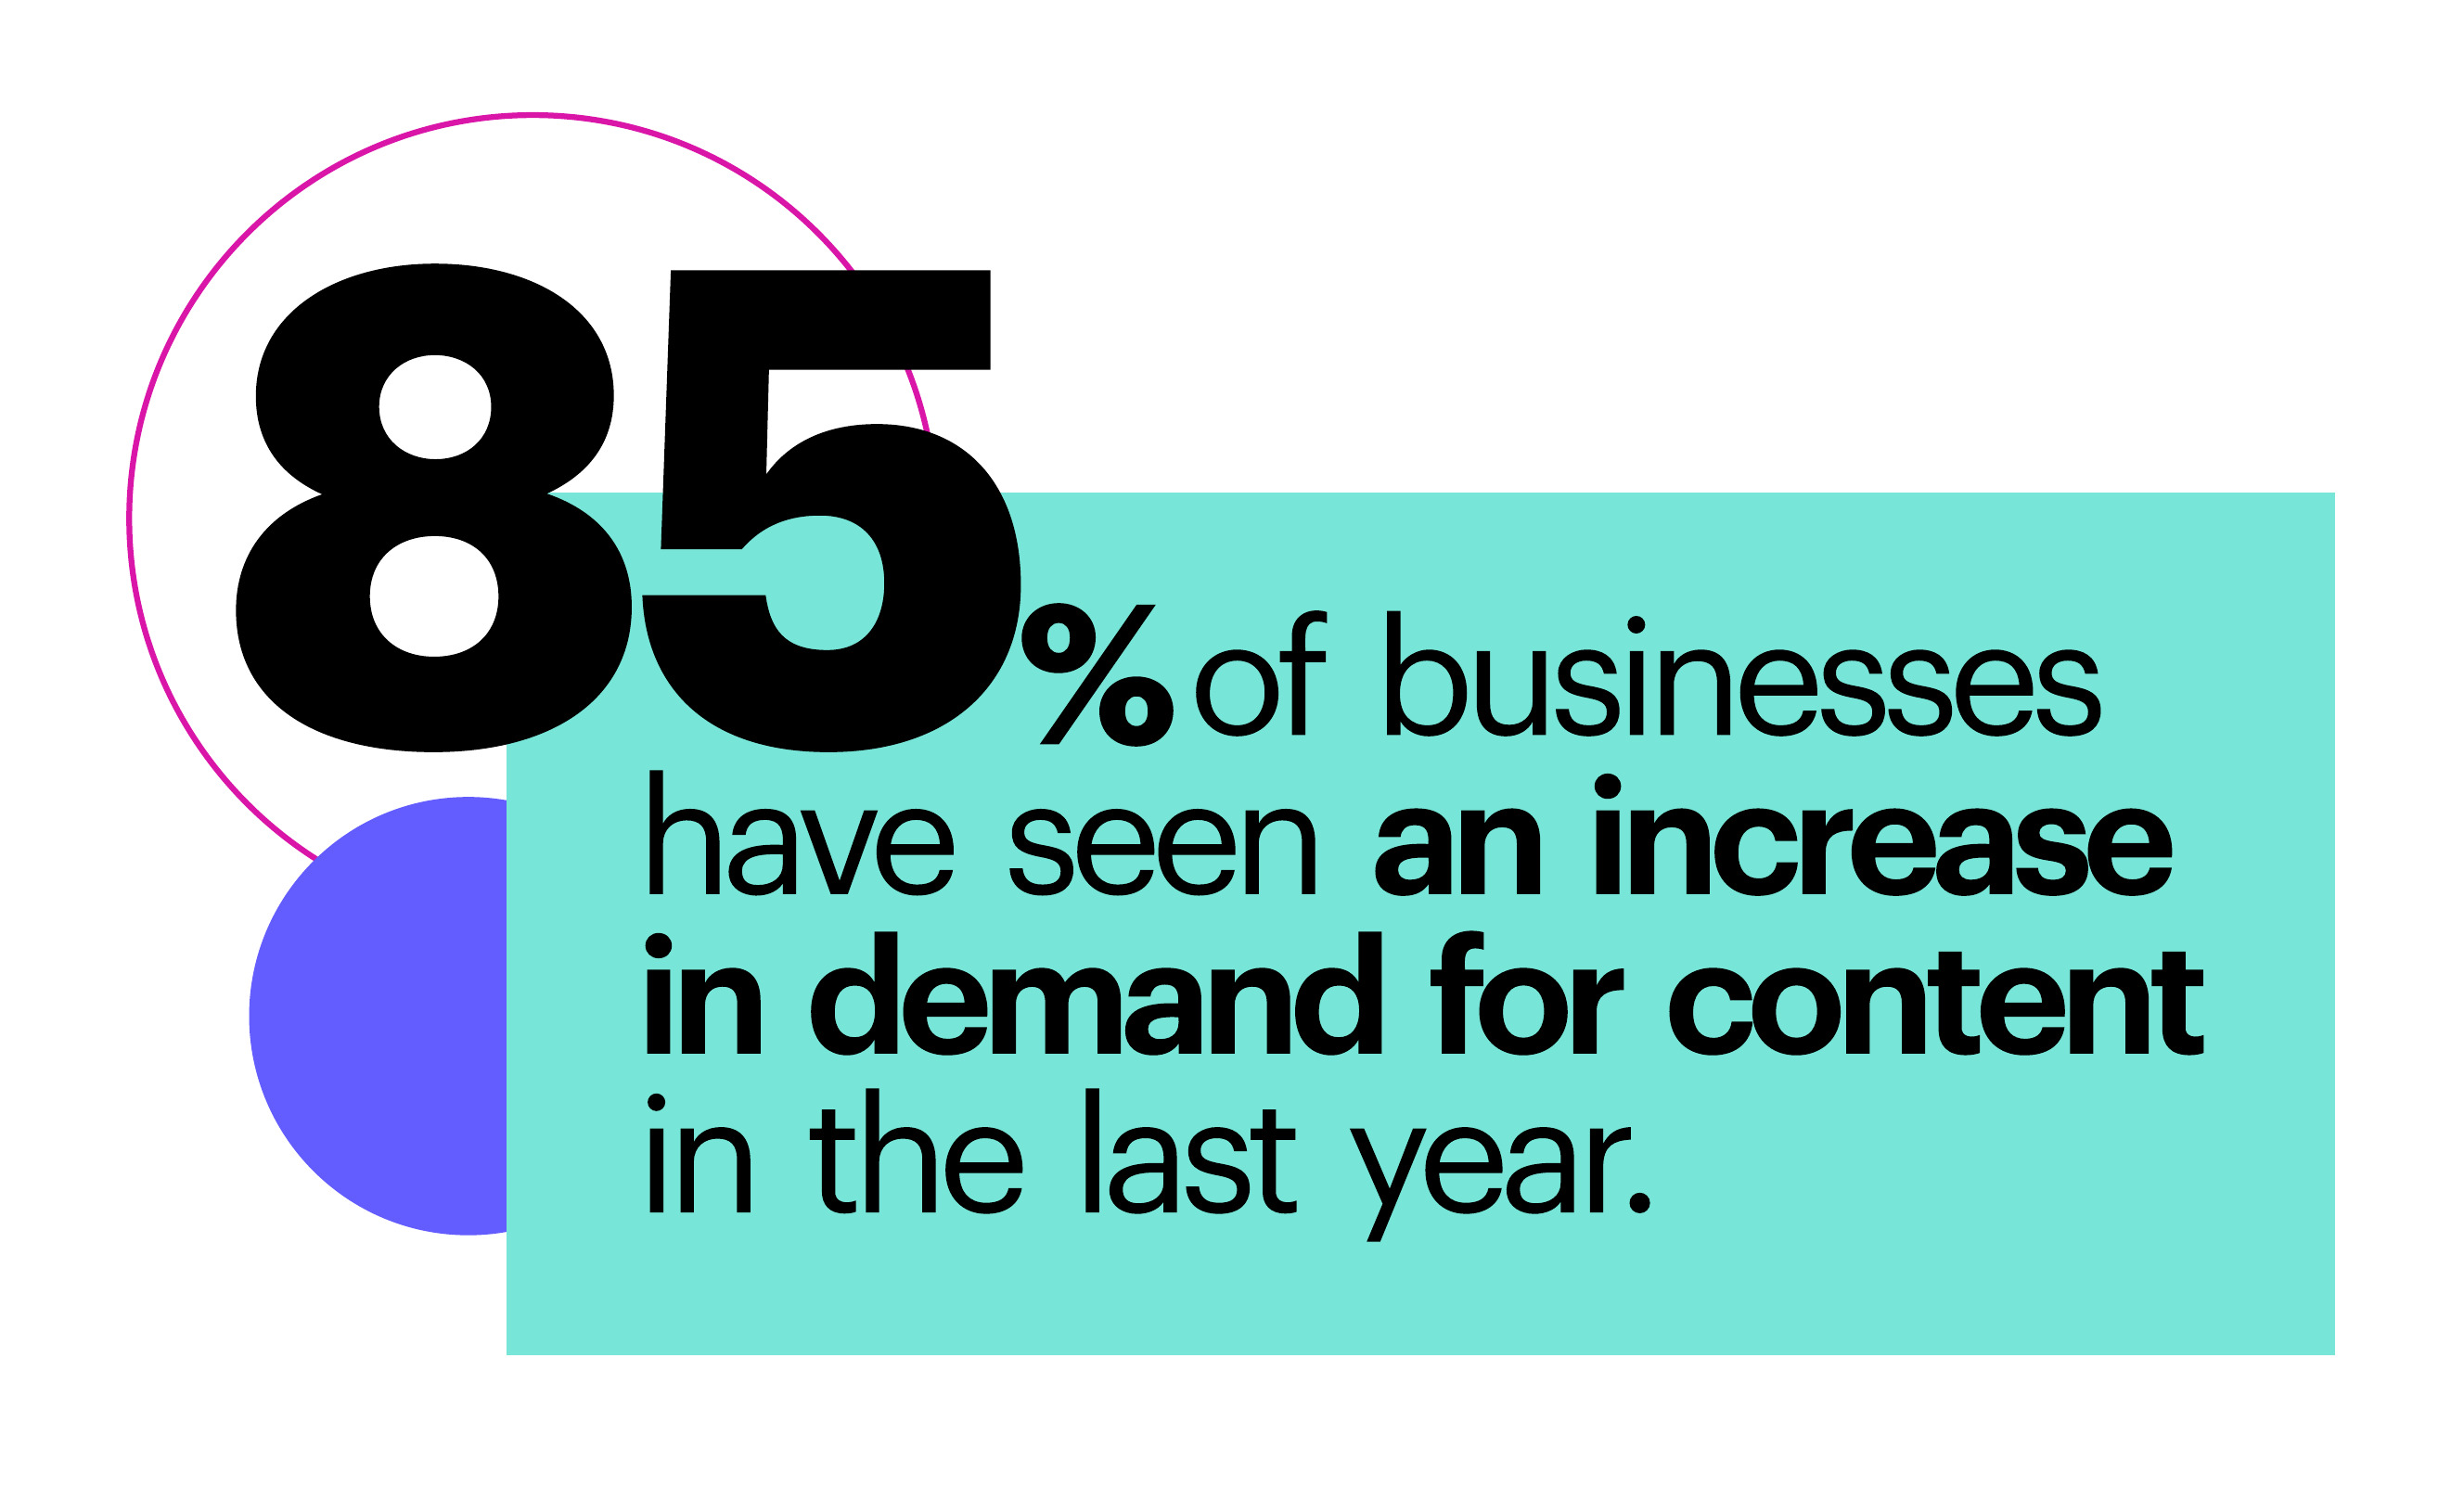 85% of businesses have seen an increase in demand for content